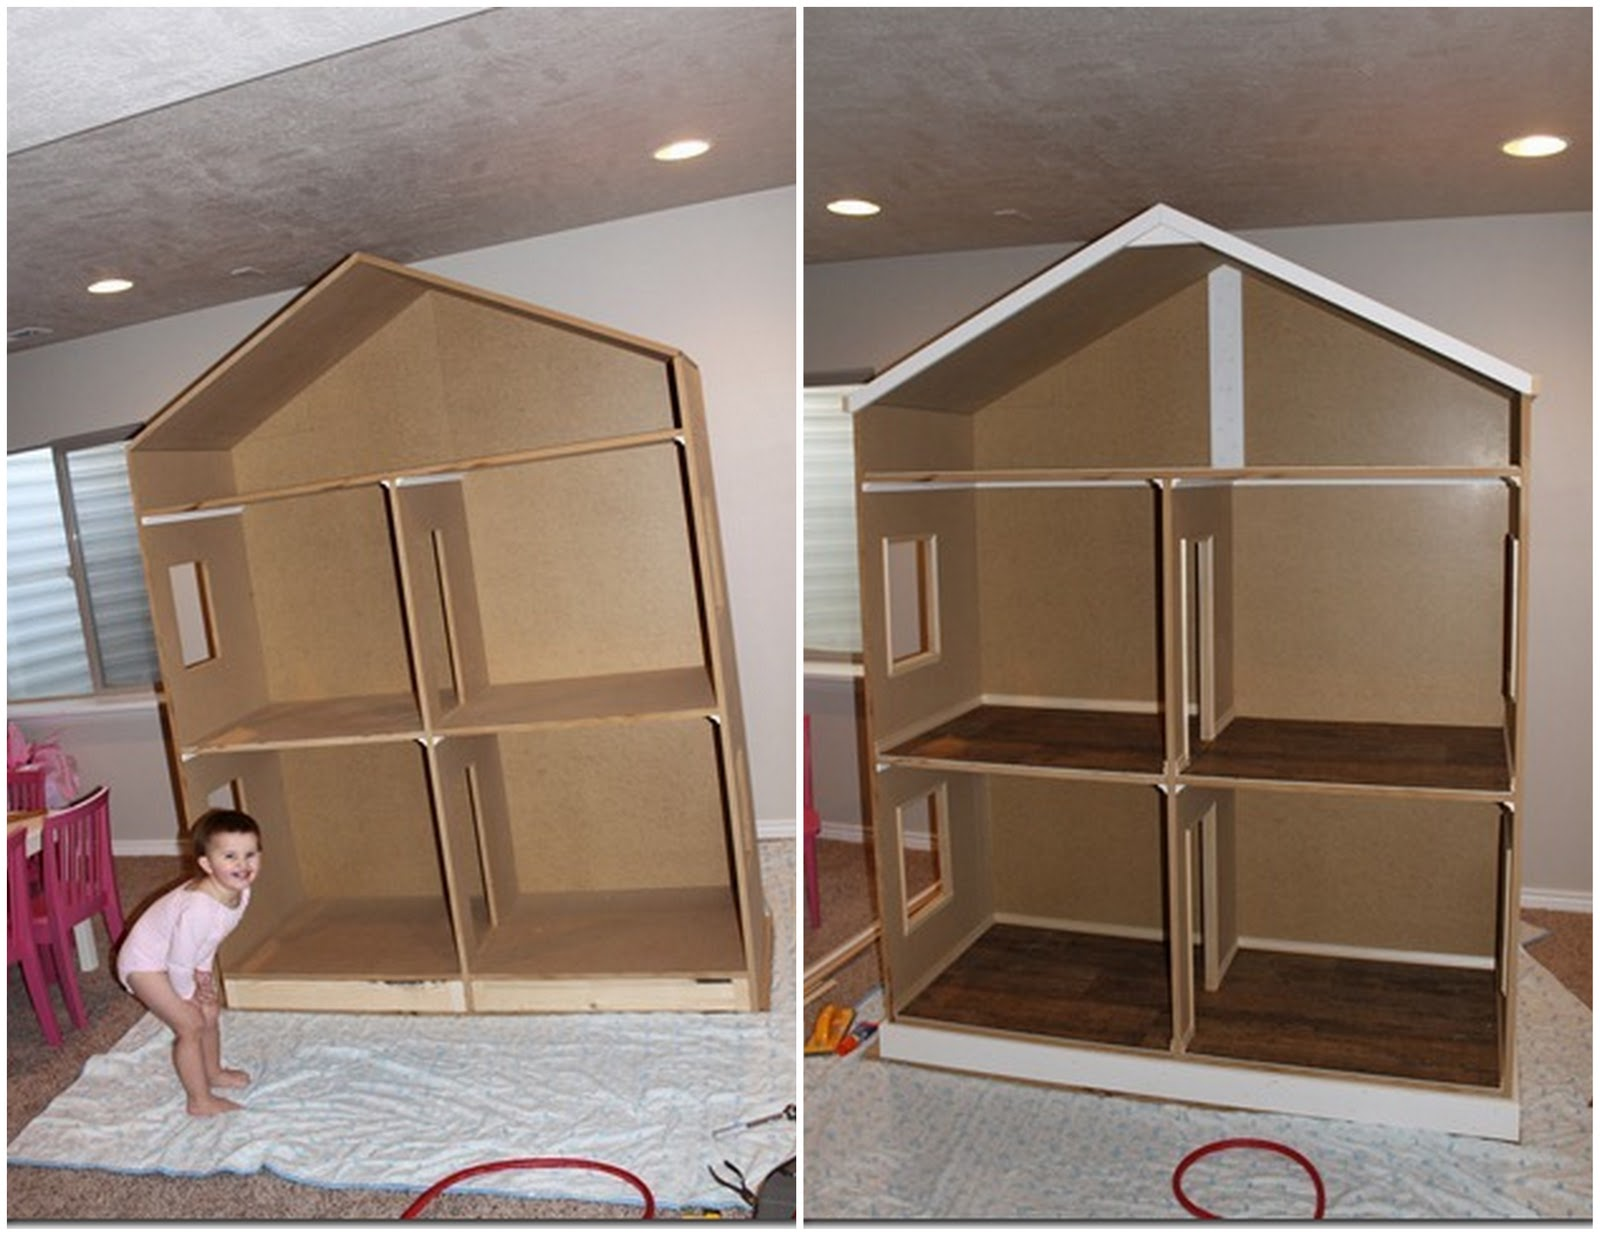 american girl doll house plans update 34 gymbofriends gymboree